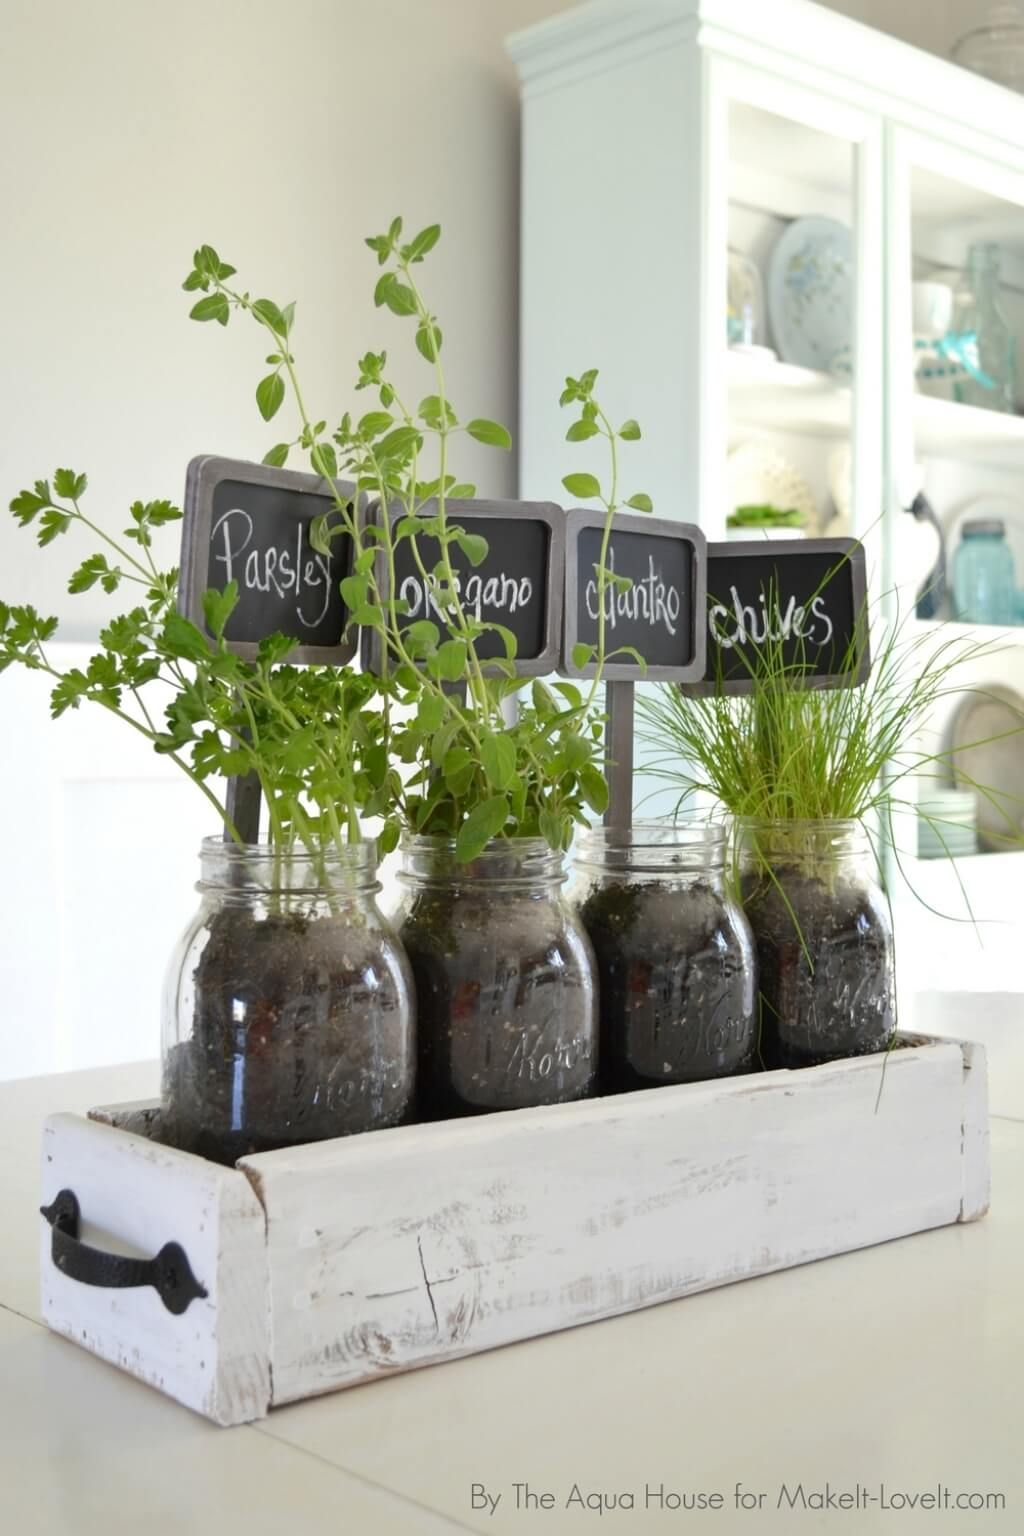 25 Creative Herb Garden Ideas For Indoors And Outdoors Indoor Herb Garden Herbs Indoors Kitchen Herbs